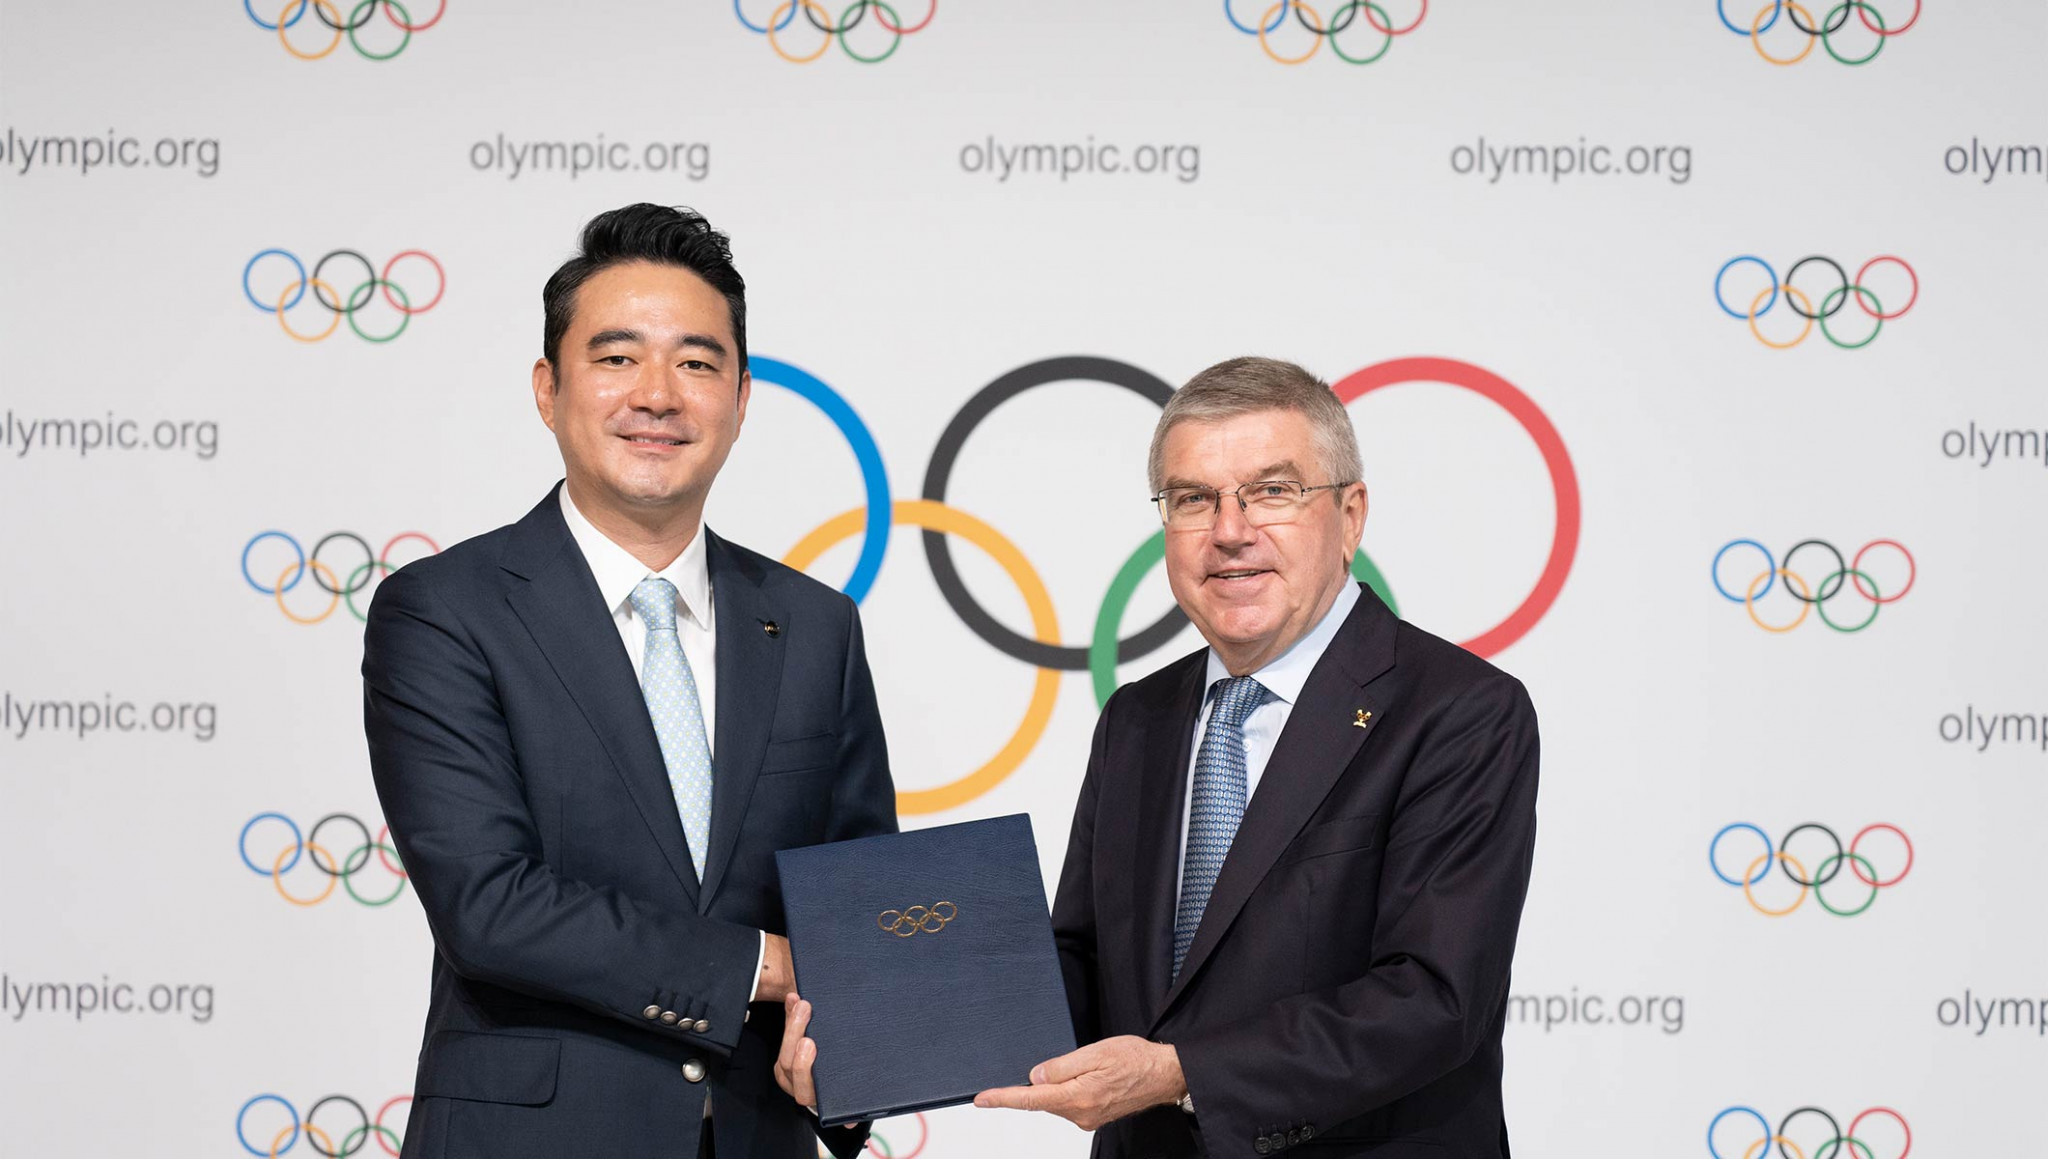 The deal covers all Olympic Games from 2026 to 2032 ©IOC